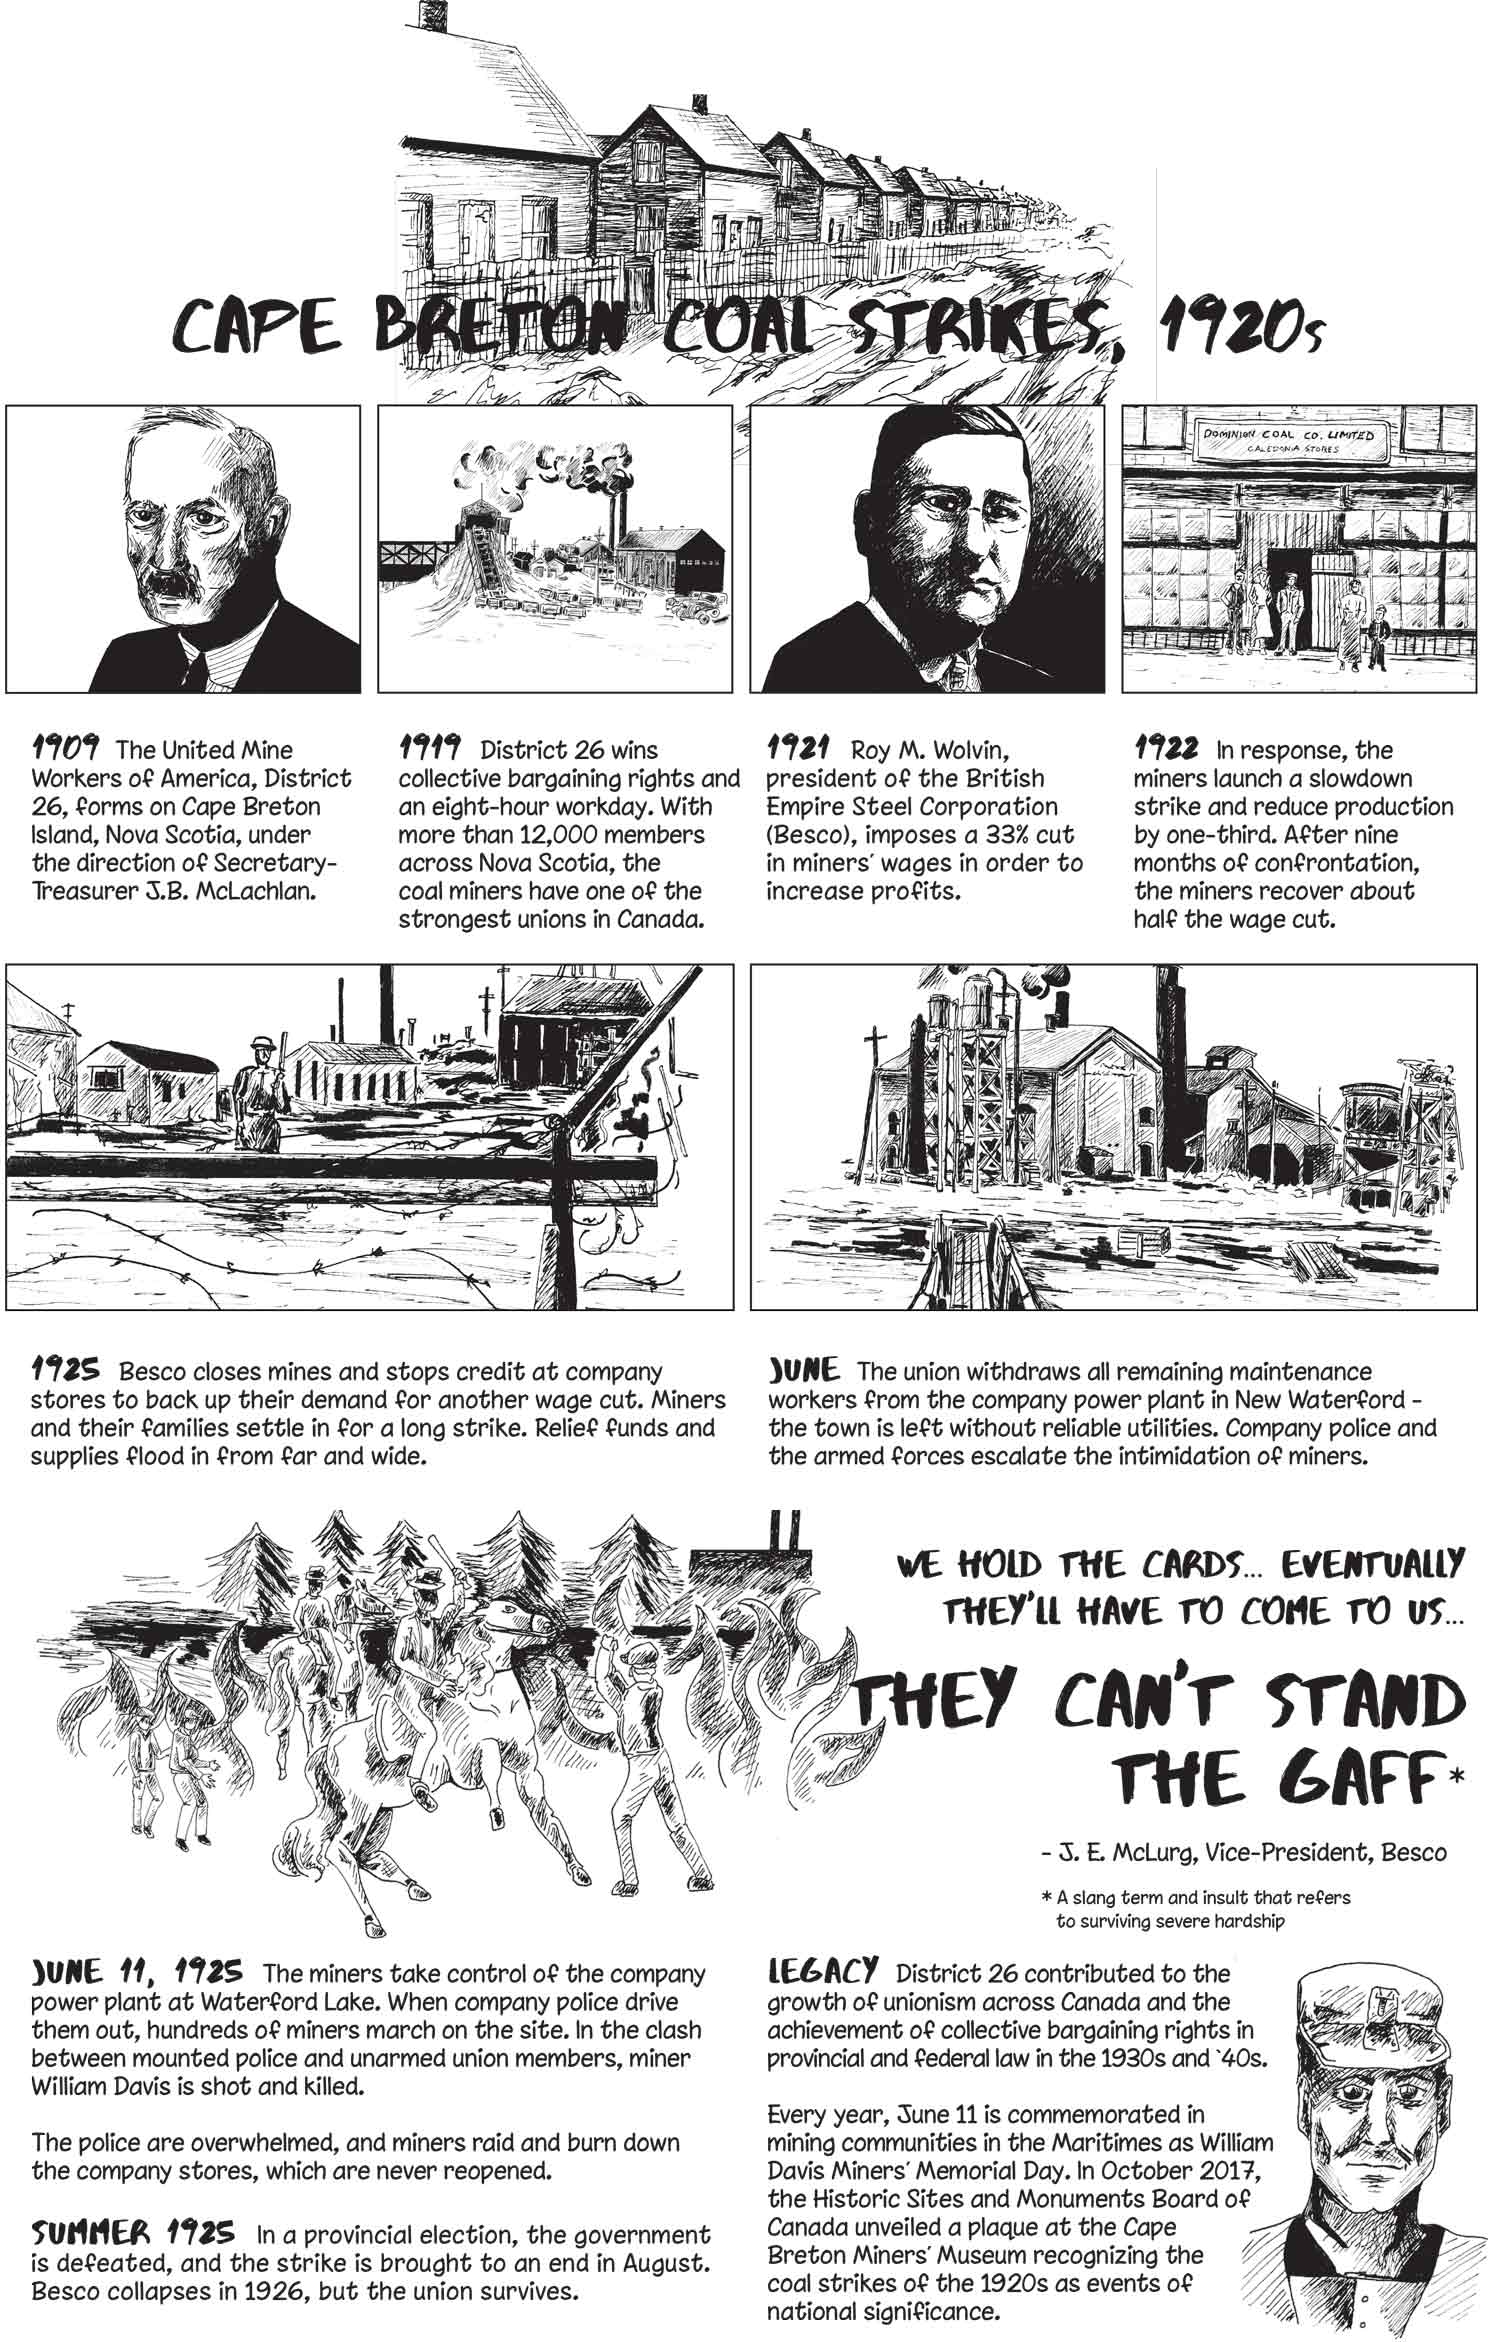 An illustrated black and white poster consisting of a series of comics panels depicting coal miners' struggles in 1920s Cape Breton.